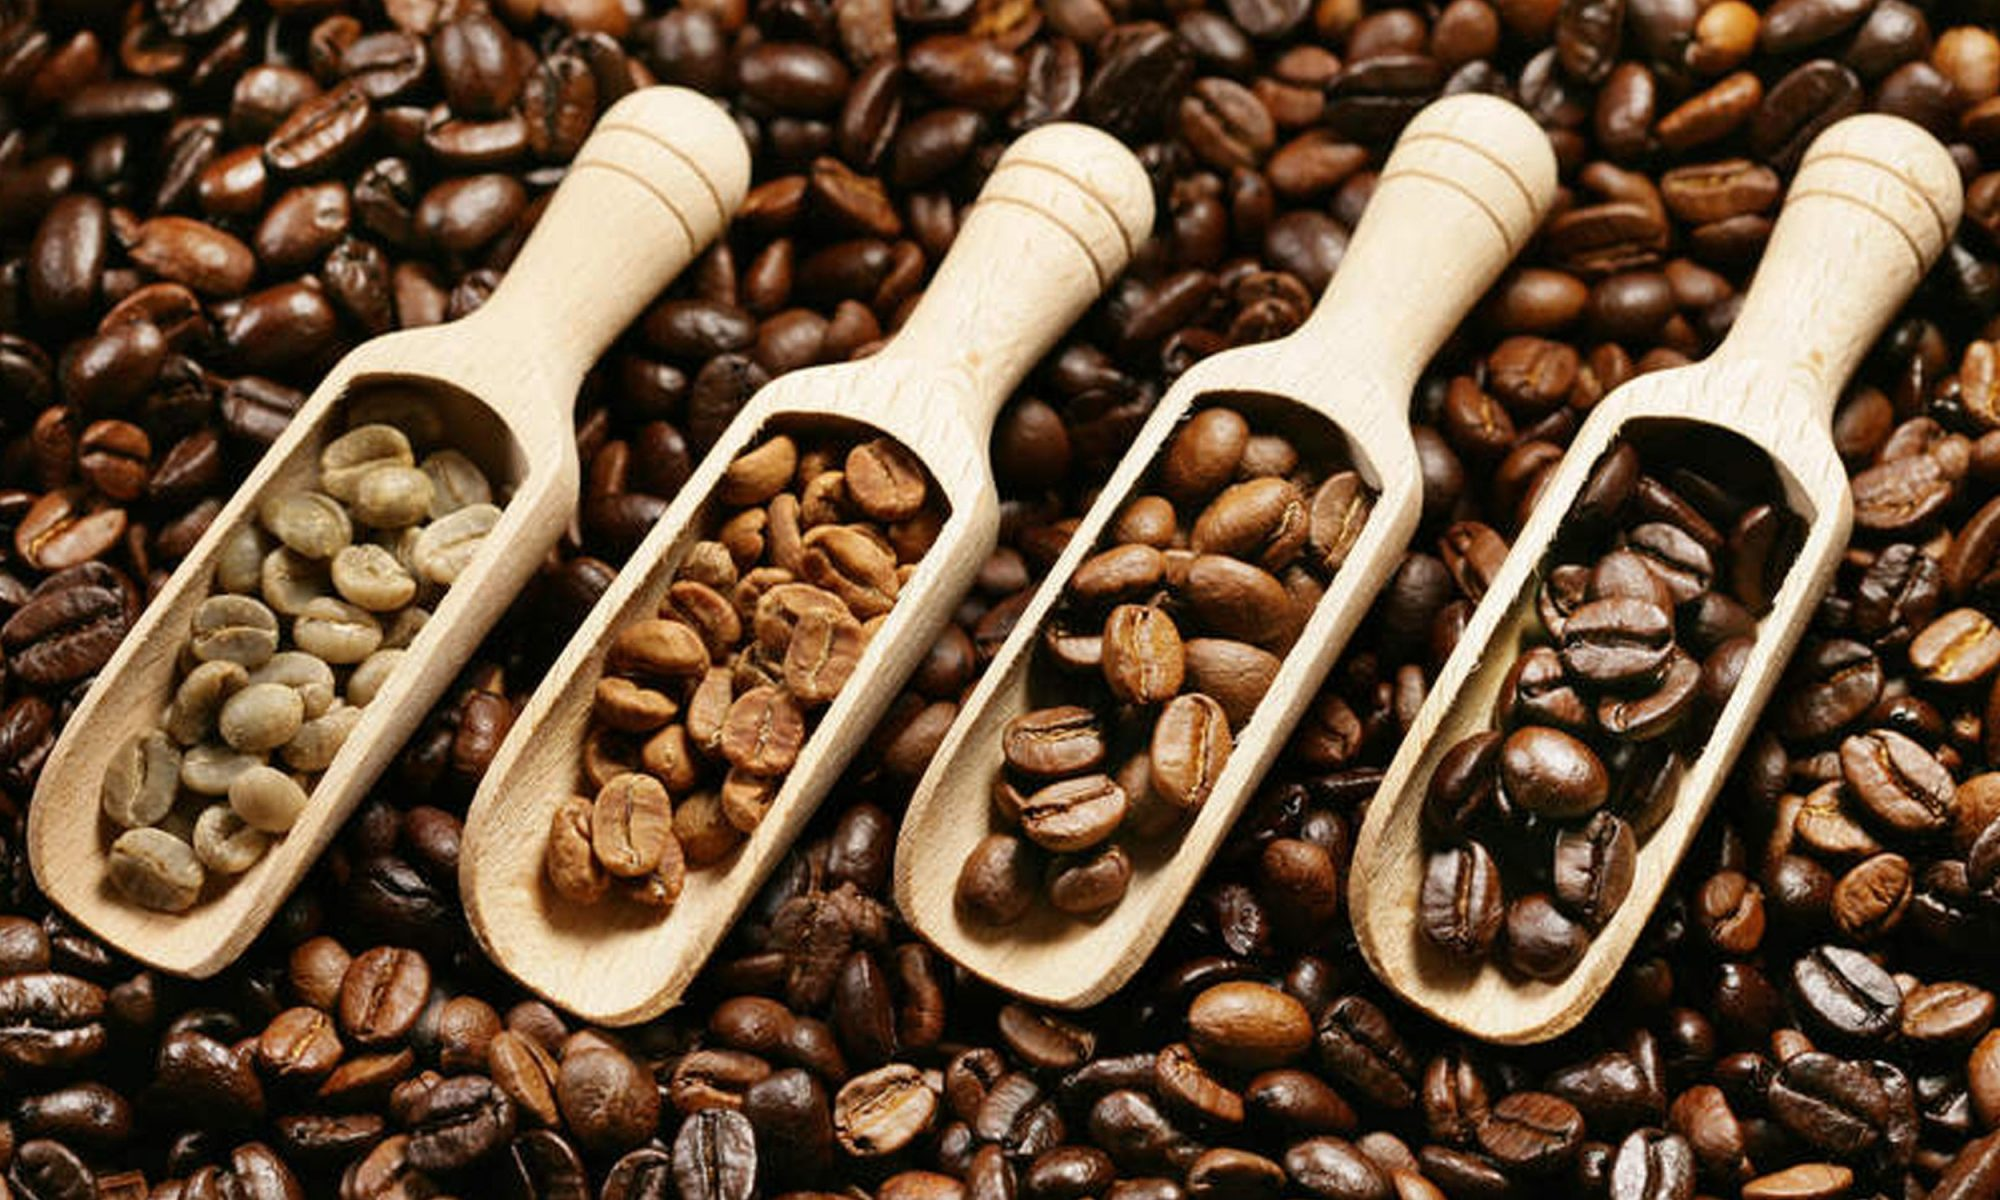 EC: Light Roast Coffee Is Healthier Than Dark Roast, According to a Study